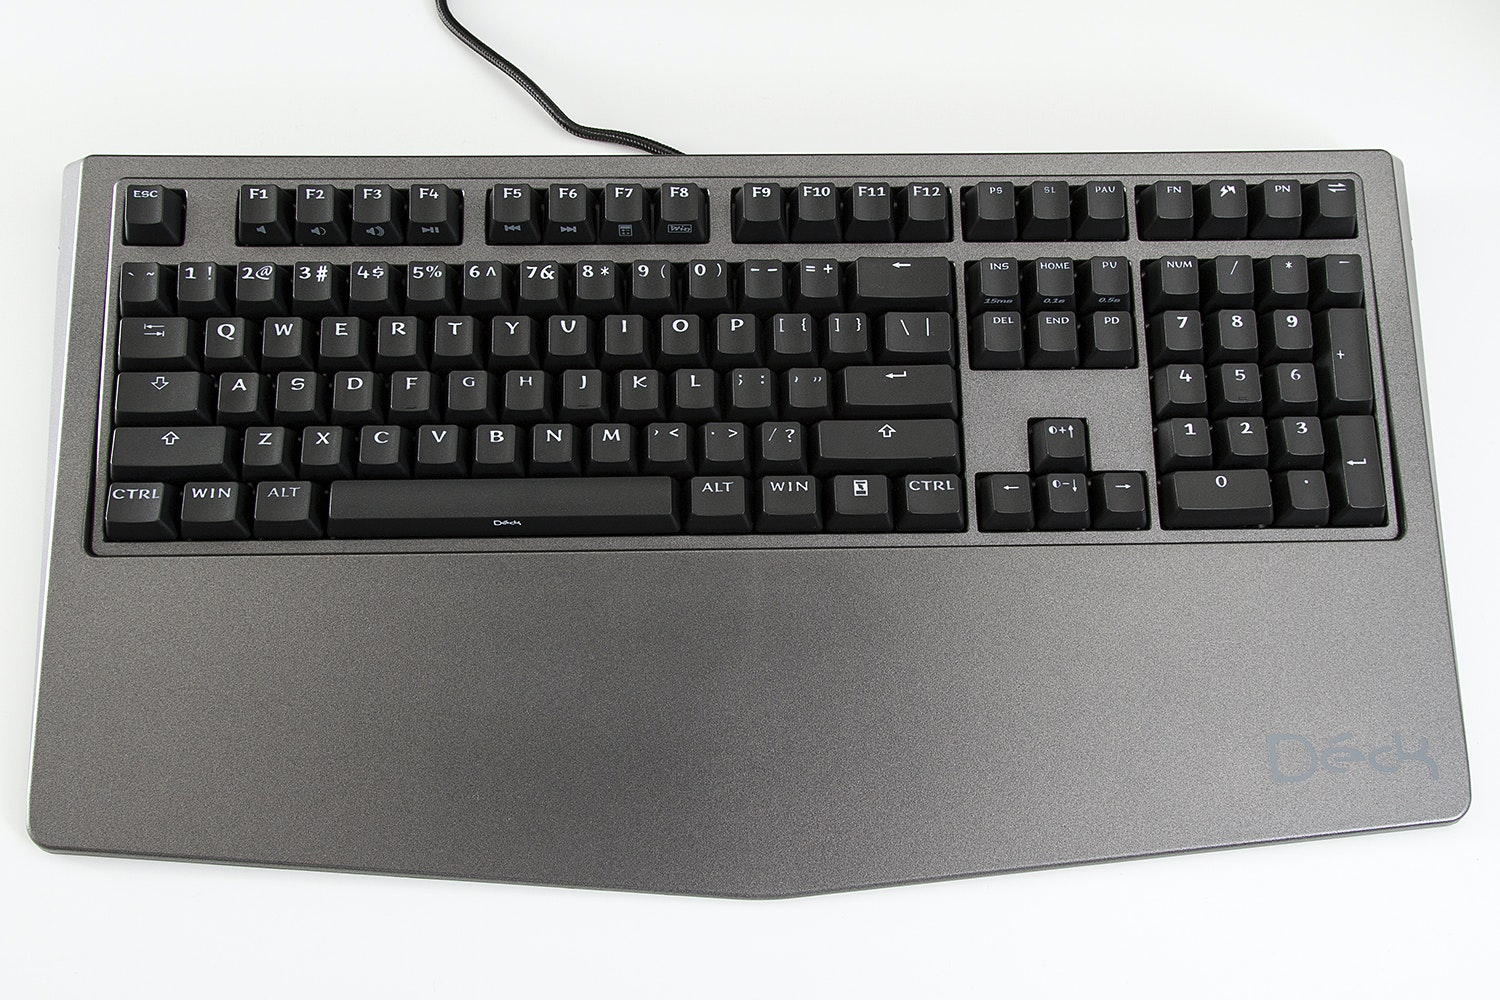 Deck 108 Hassium Pro Mechanical Keyboard